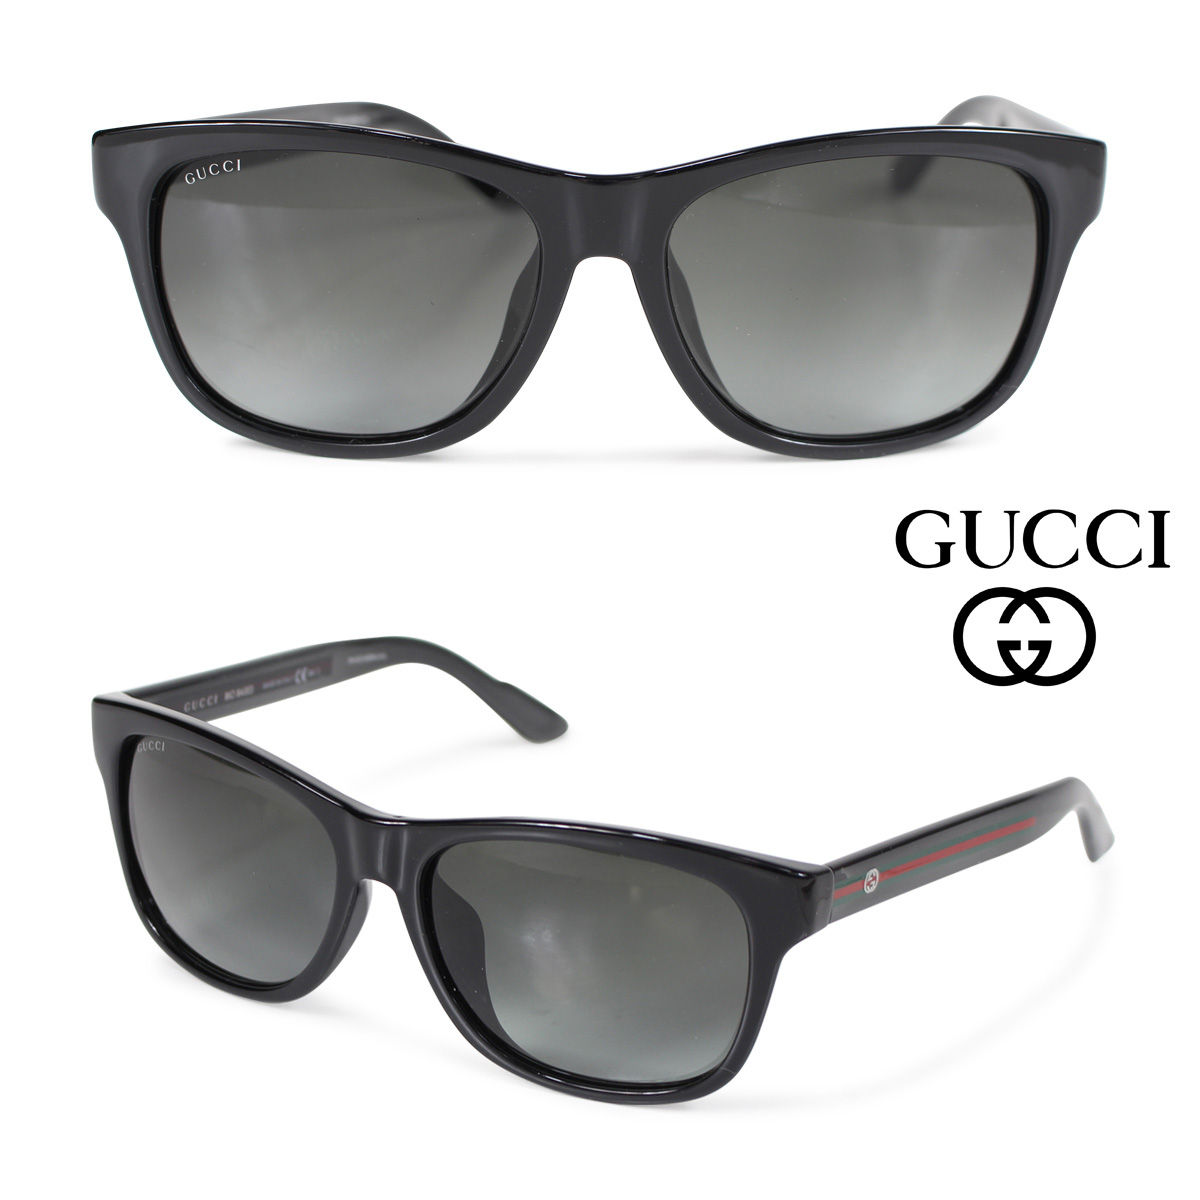 e37c8008bba It is the brand which Gucci puts the name of the designer to guarantee  quality for the first time